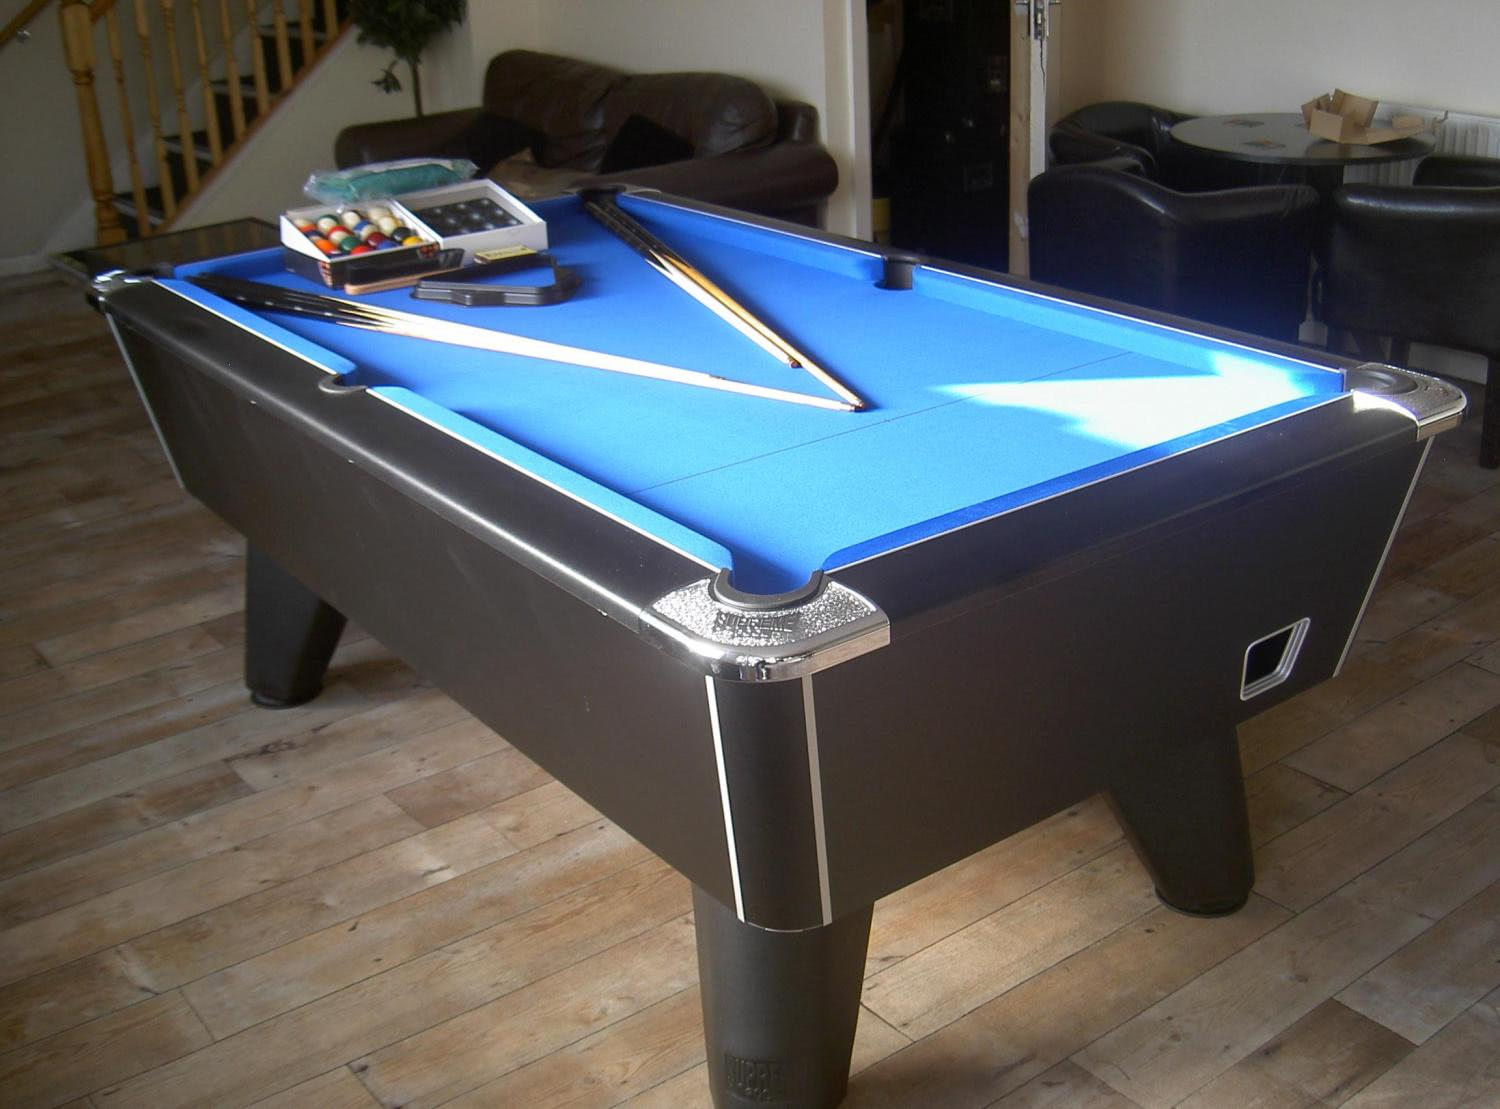 Supreme Winner Pool Table Ft Ft Ft Liberty Games - Competition pool table